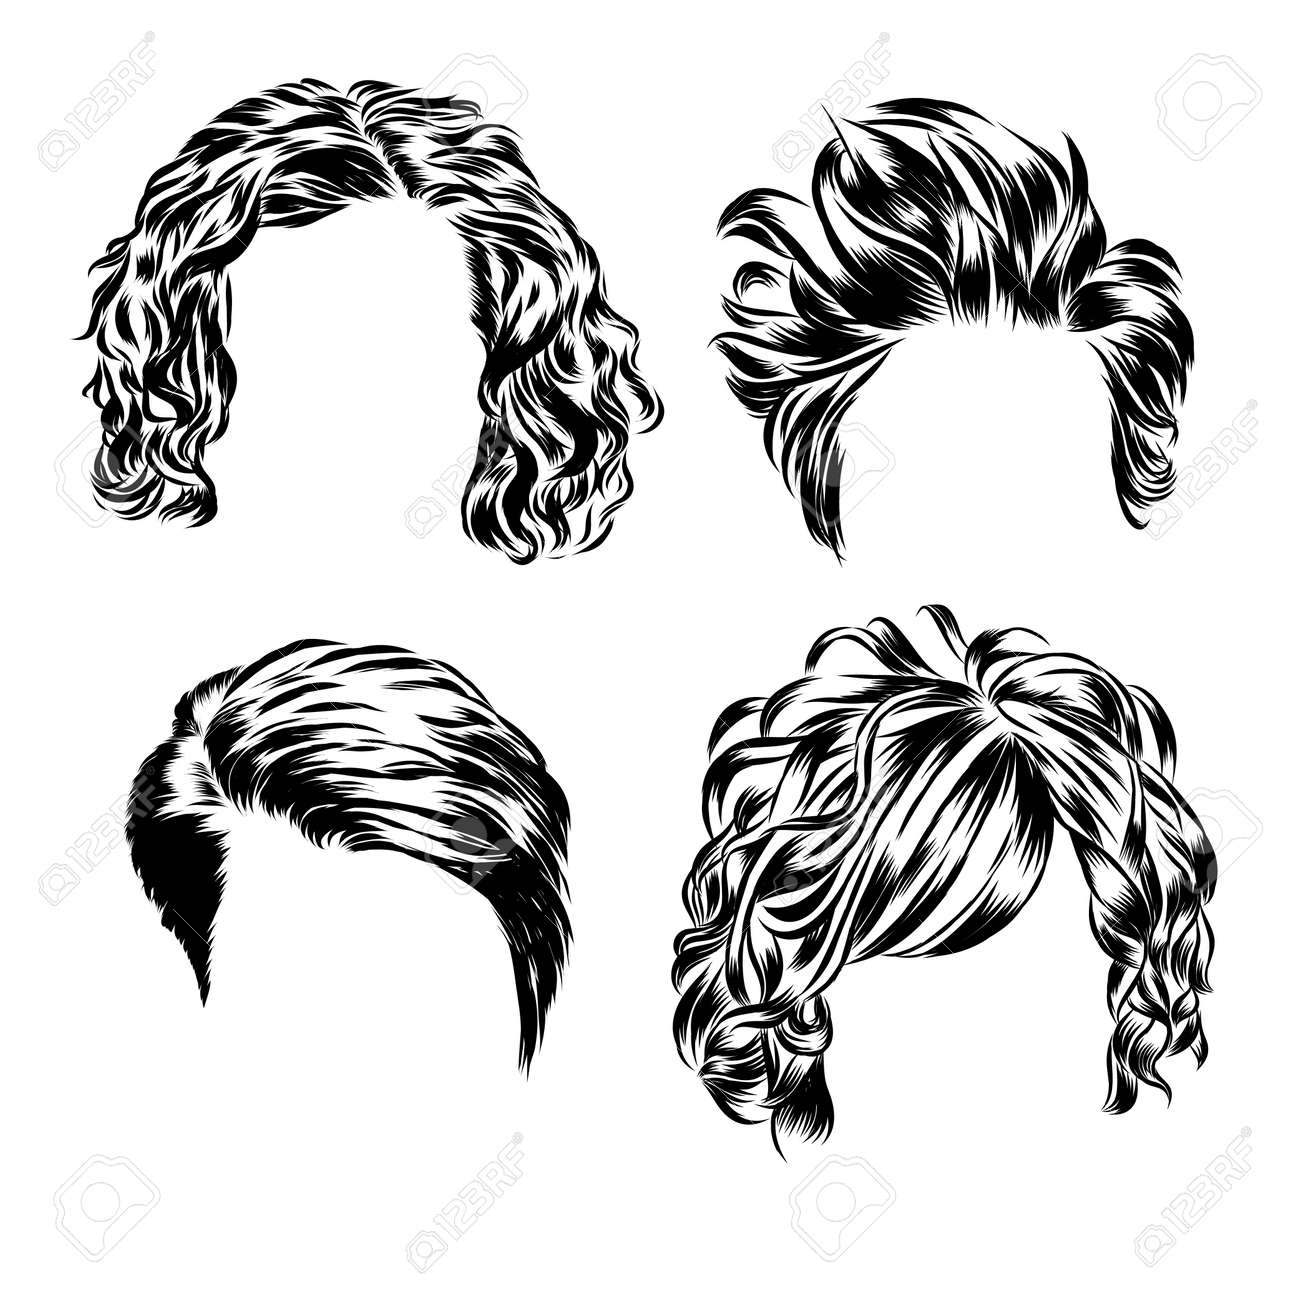 Hand Drawn Set Of Different Women S Hair Styles EPS Royalty - Different hair style drawing